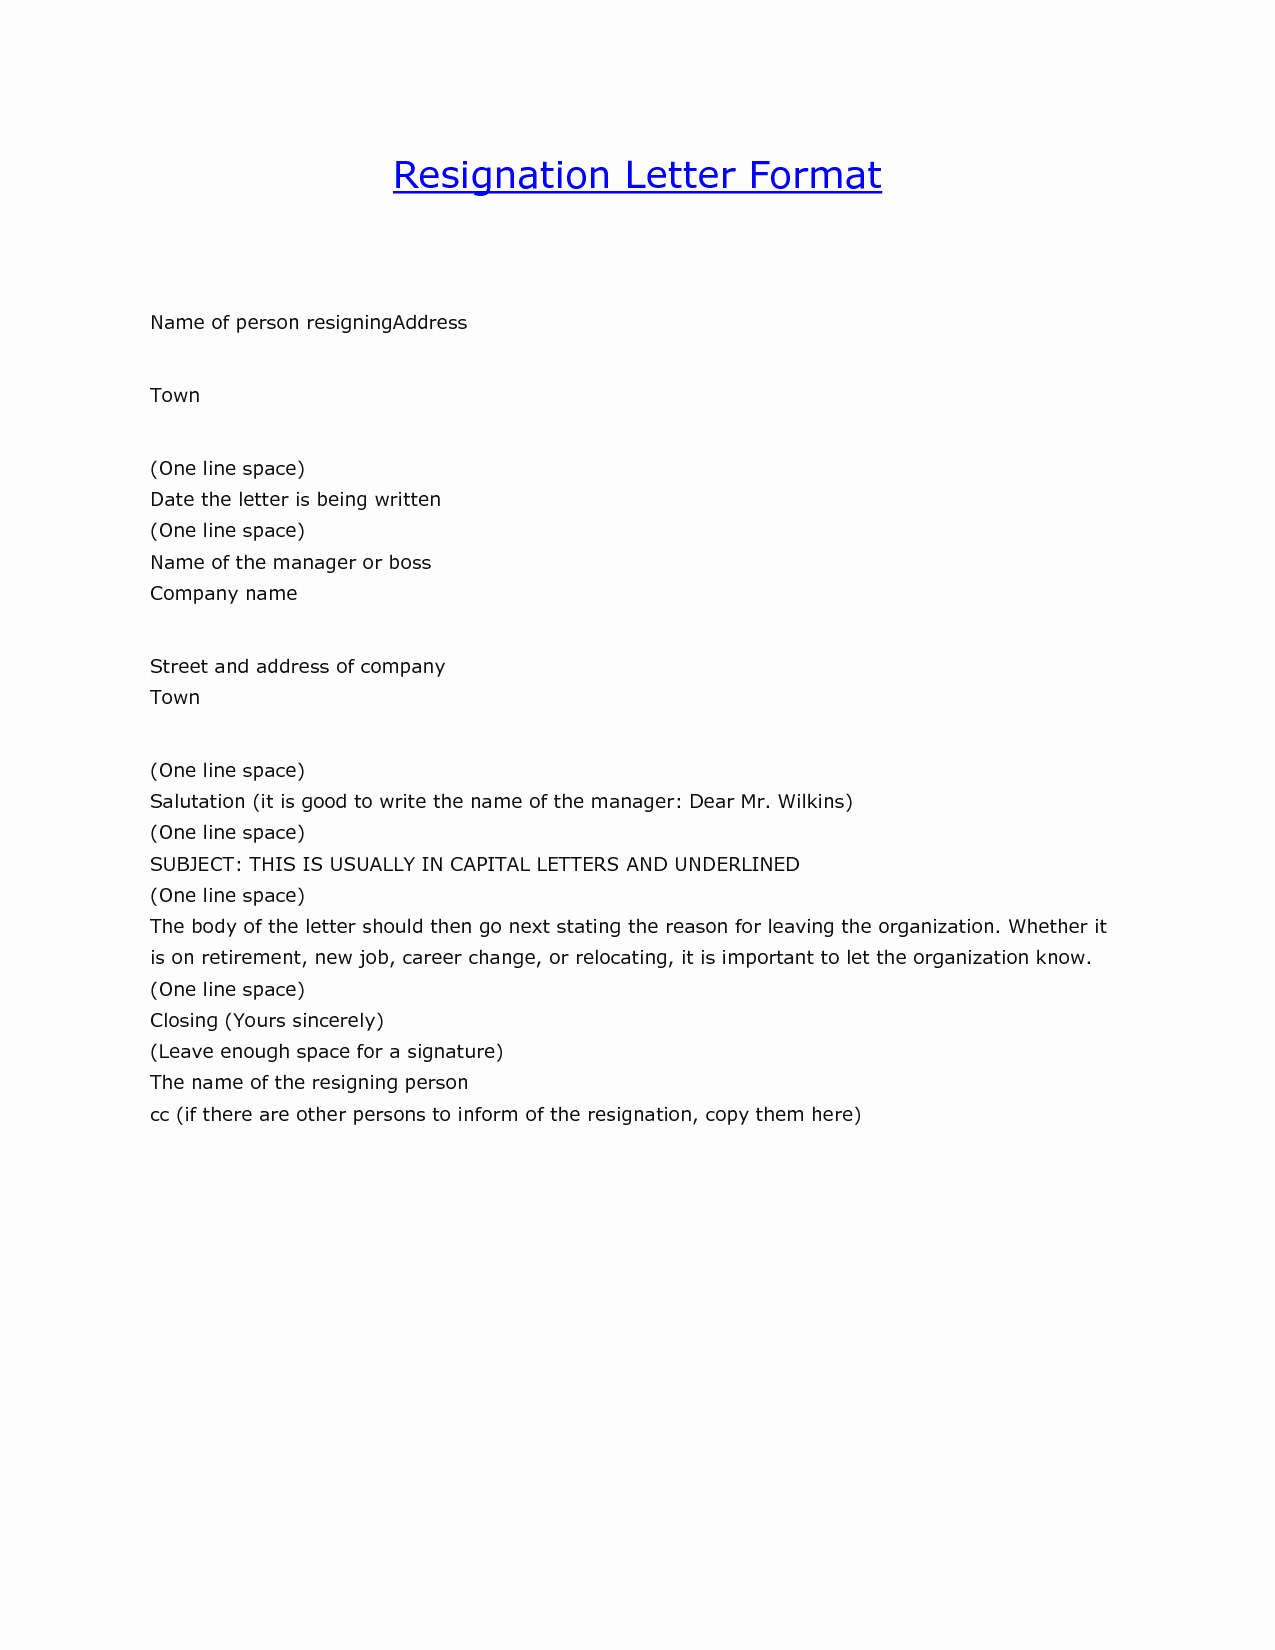 Resignation Letter In Word Fresh Letter Resignation format